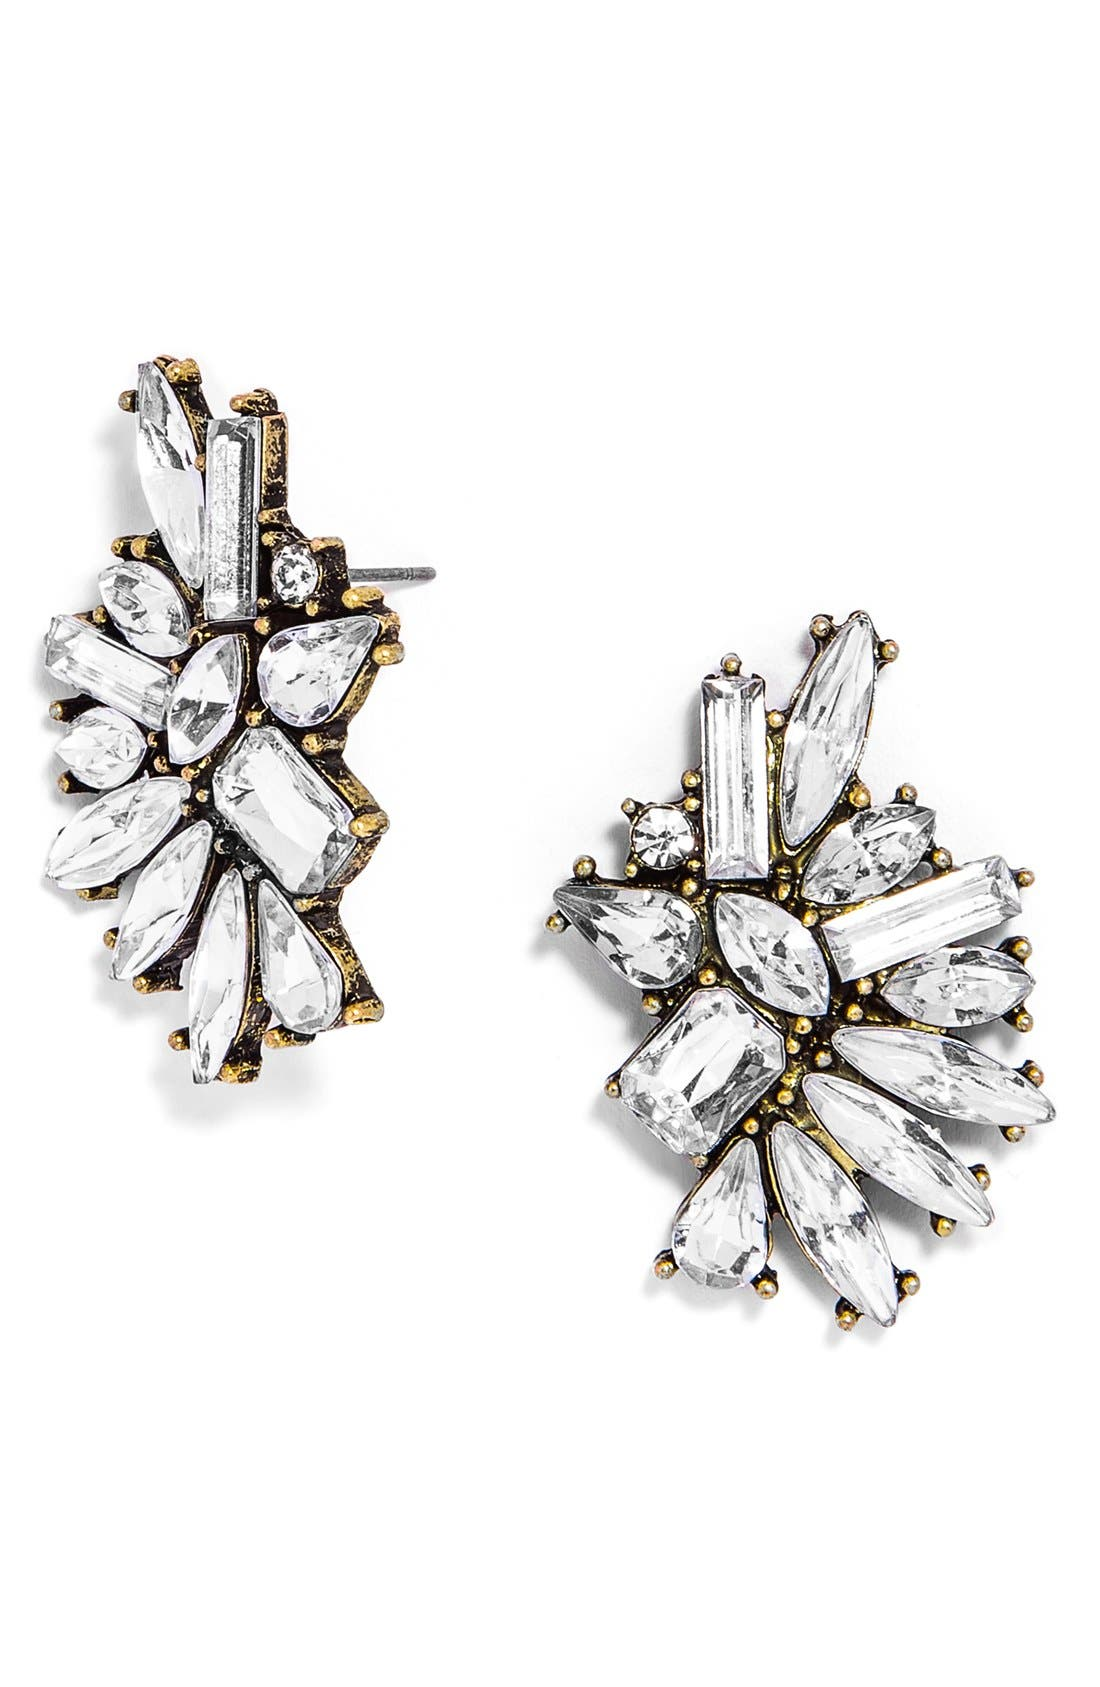 Main Image - BaubleBar 'Crystal Dolores' Statement Stud Earrings